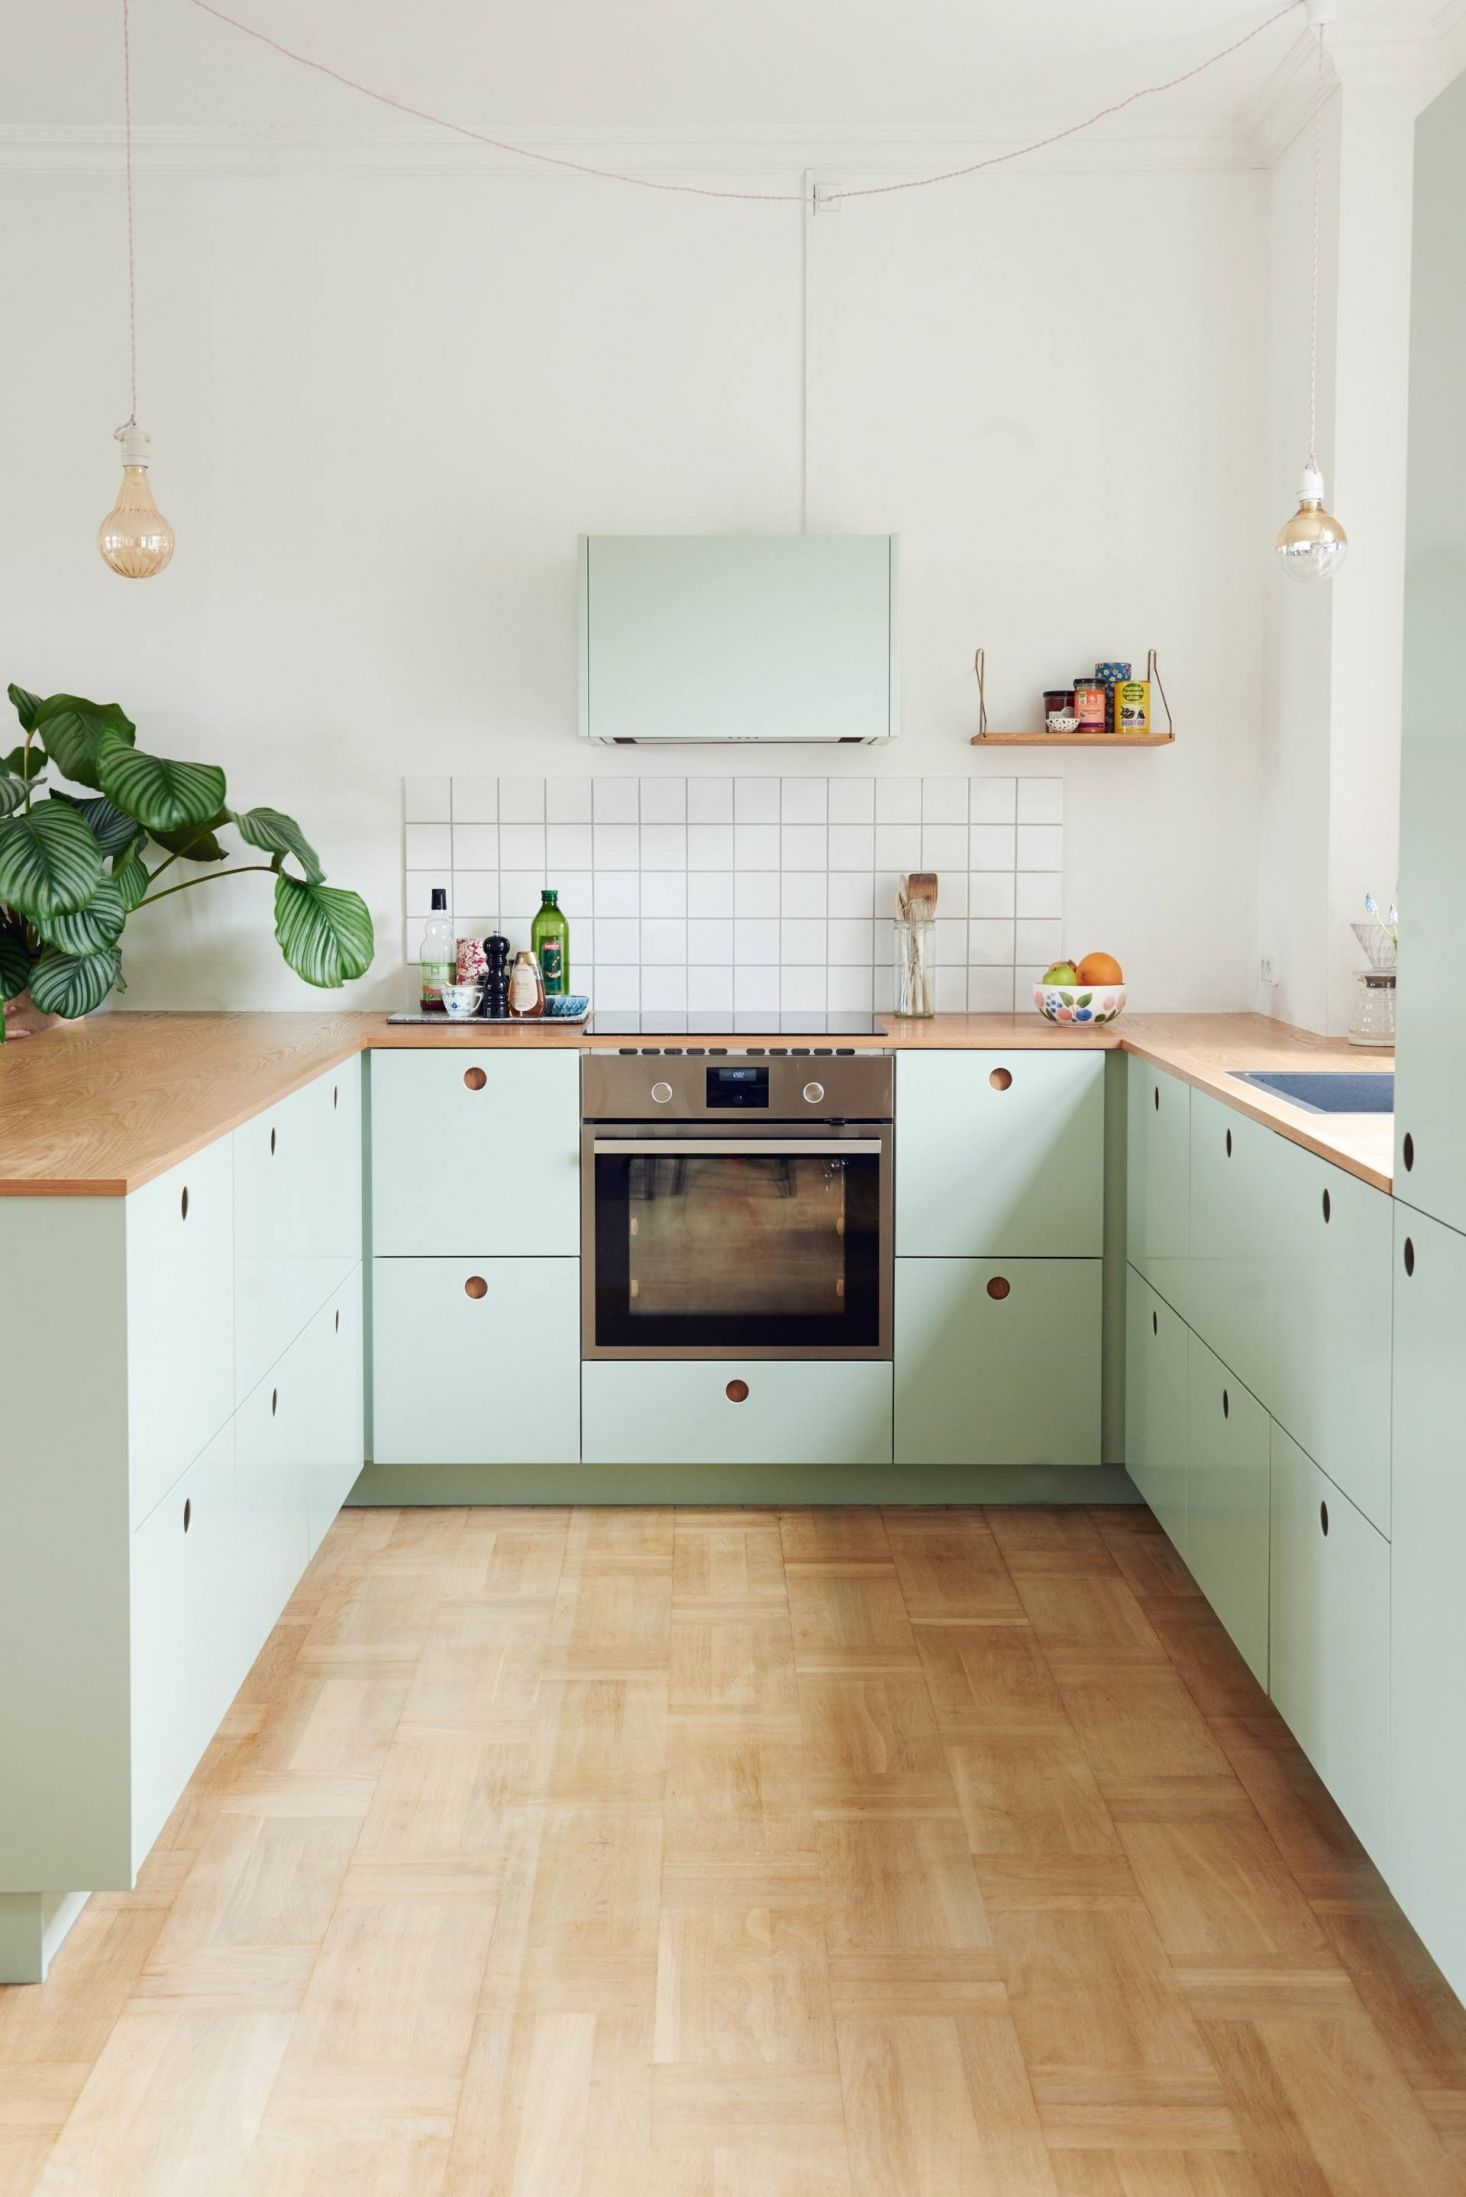 The Ceiling Mounted Range Hood Is Disguised By A Linoleum Fronted Box In Kitchen O Kitchens Without Upper Cabinets Kitchen Color Trends Modern Kitchen Upgrades